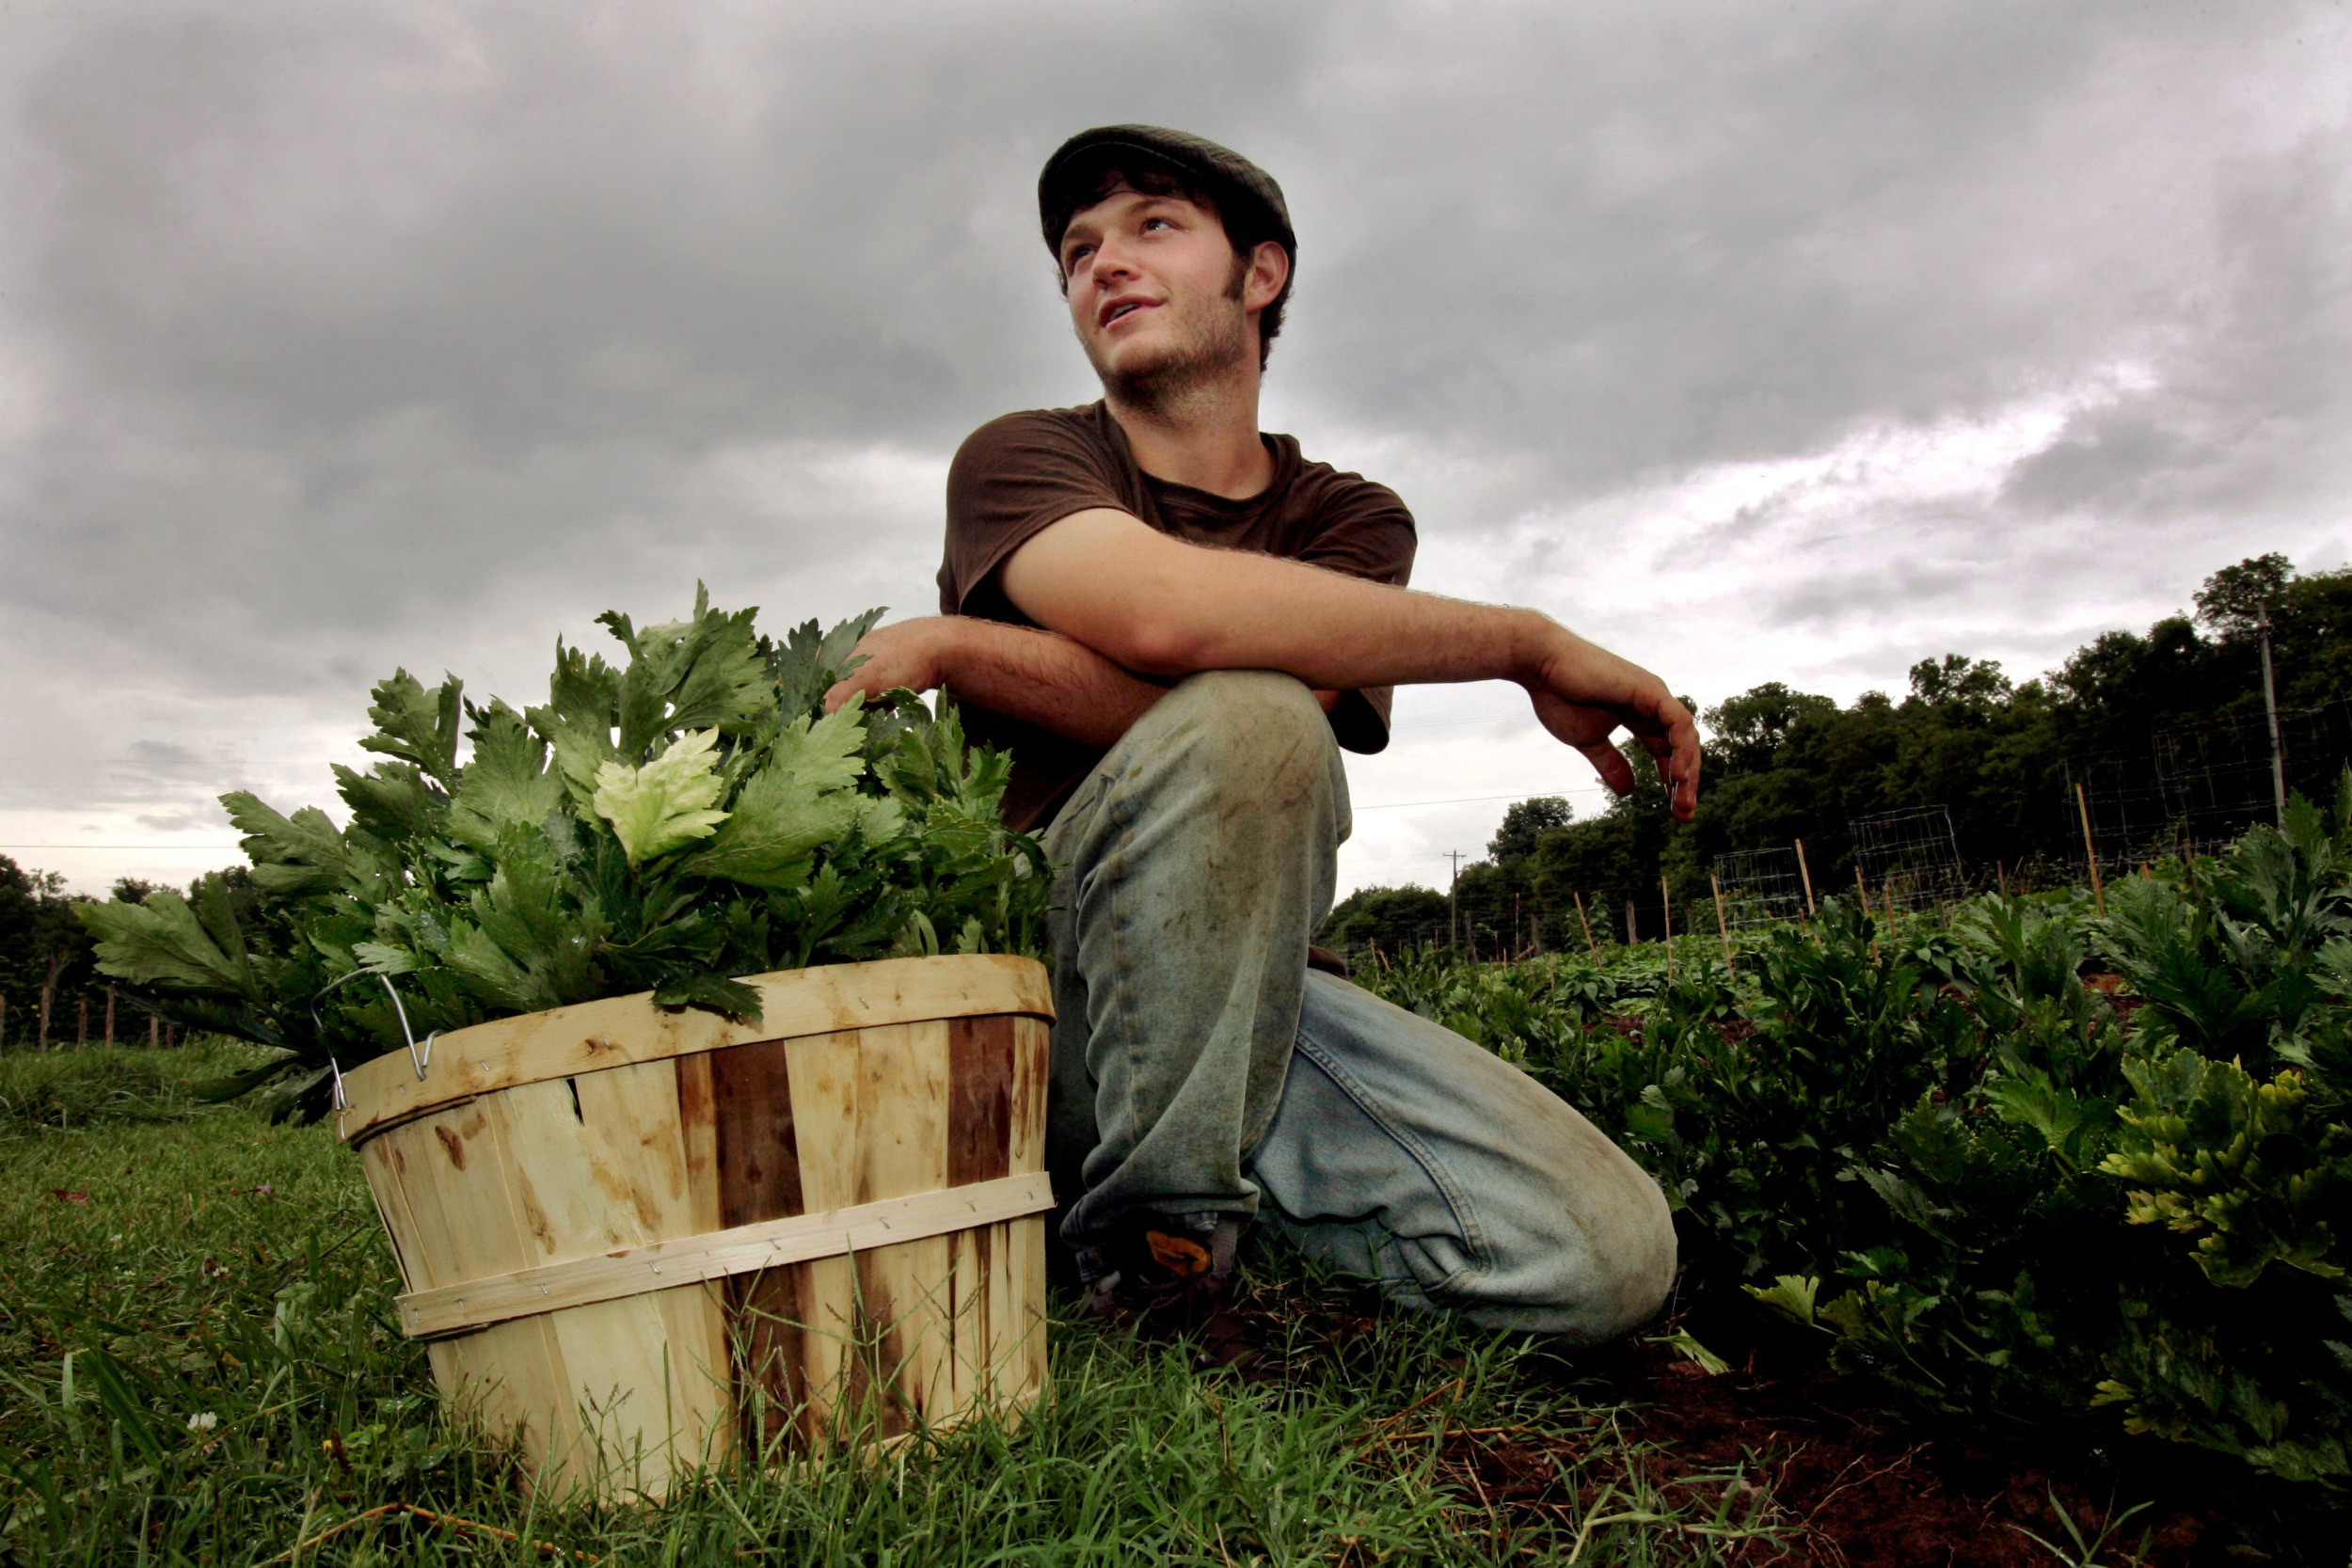 Eric Wooldridge, farm manager at Sulphur Creek Farm, harvests celery outside Nashville, Tenn. The commercial organic farm runs a CSA and sends 50-80% of its harvest to groups like Second Harvest food bank.